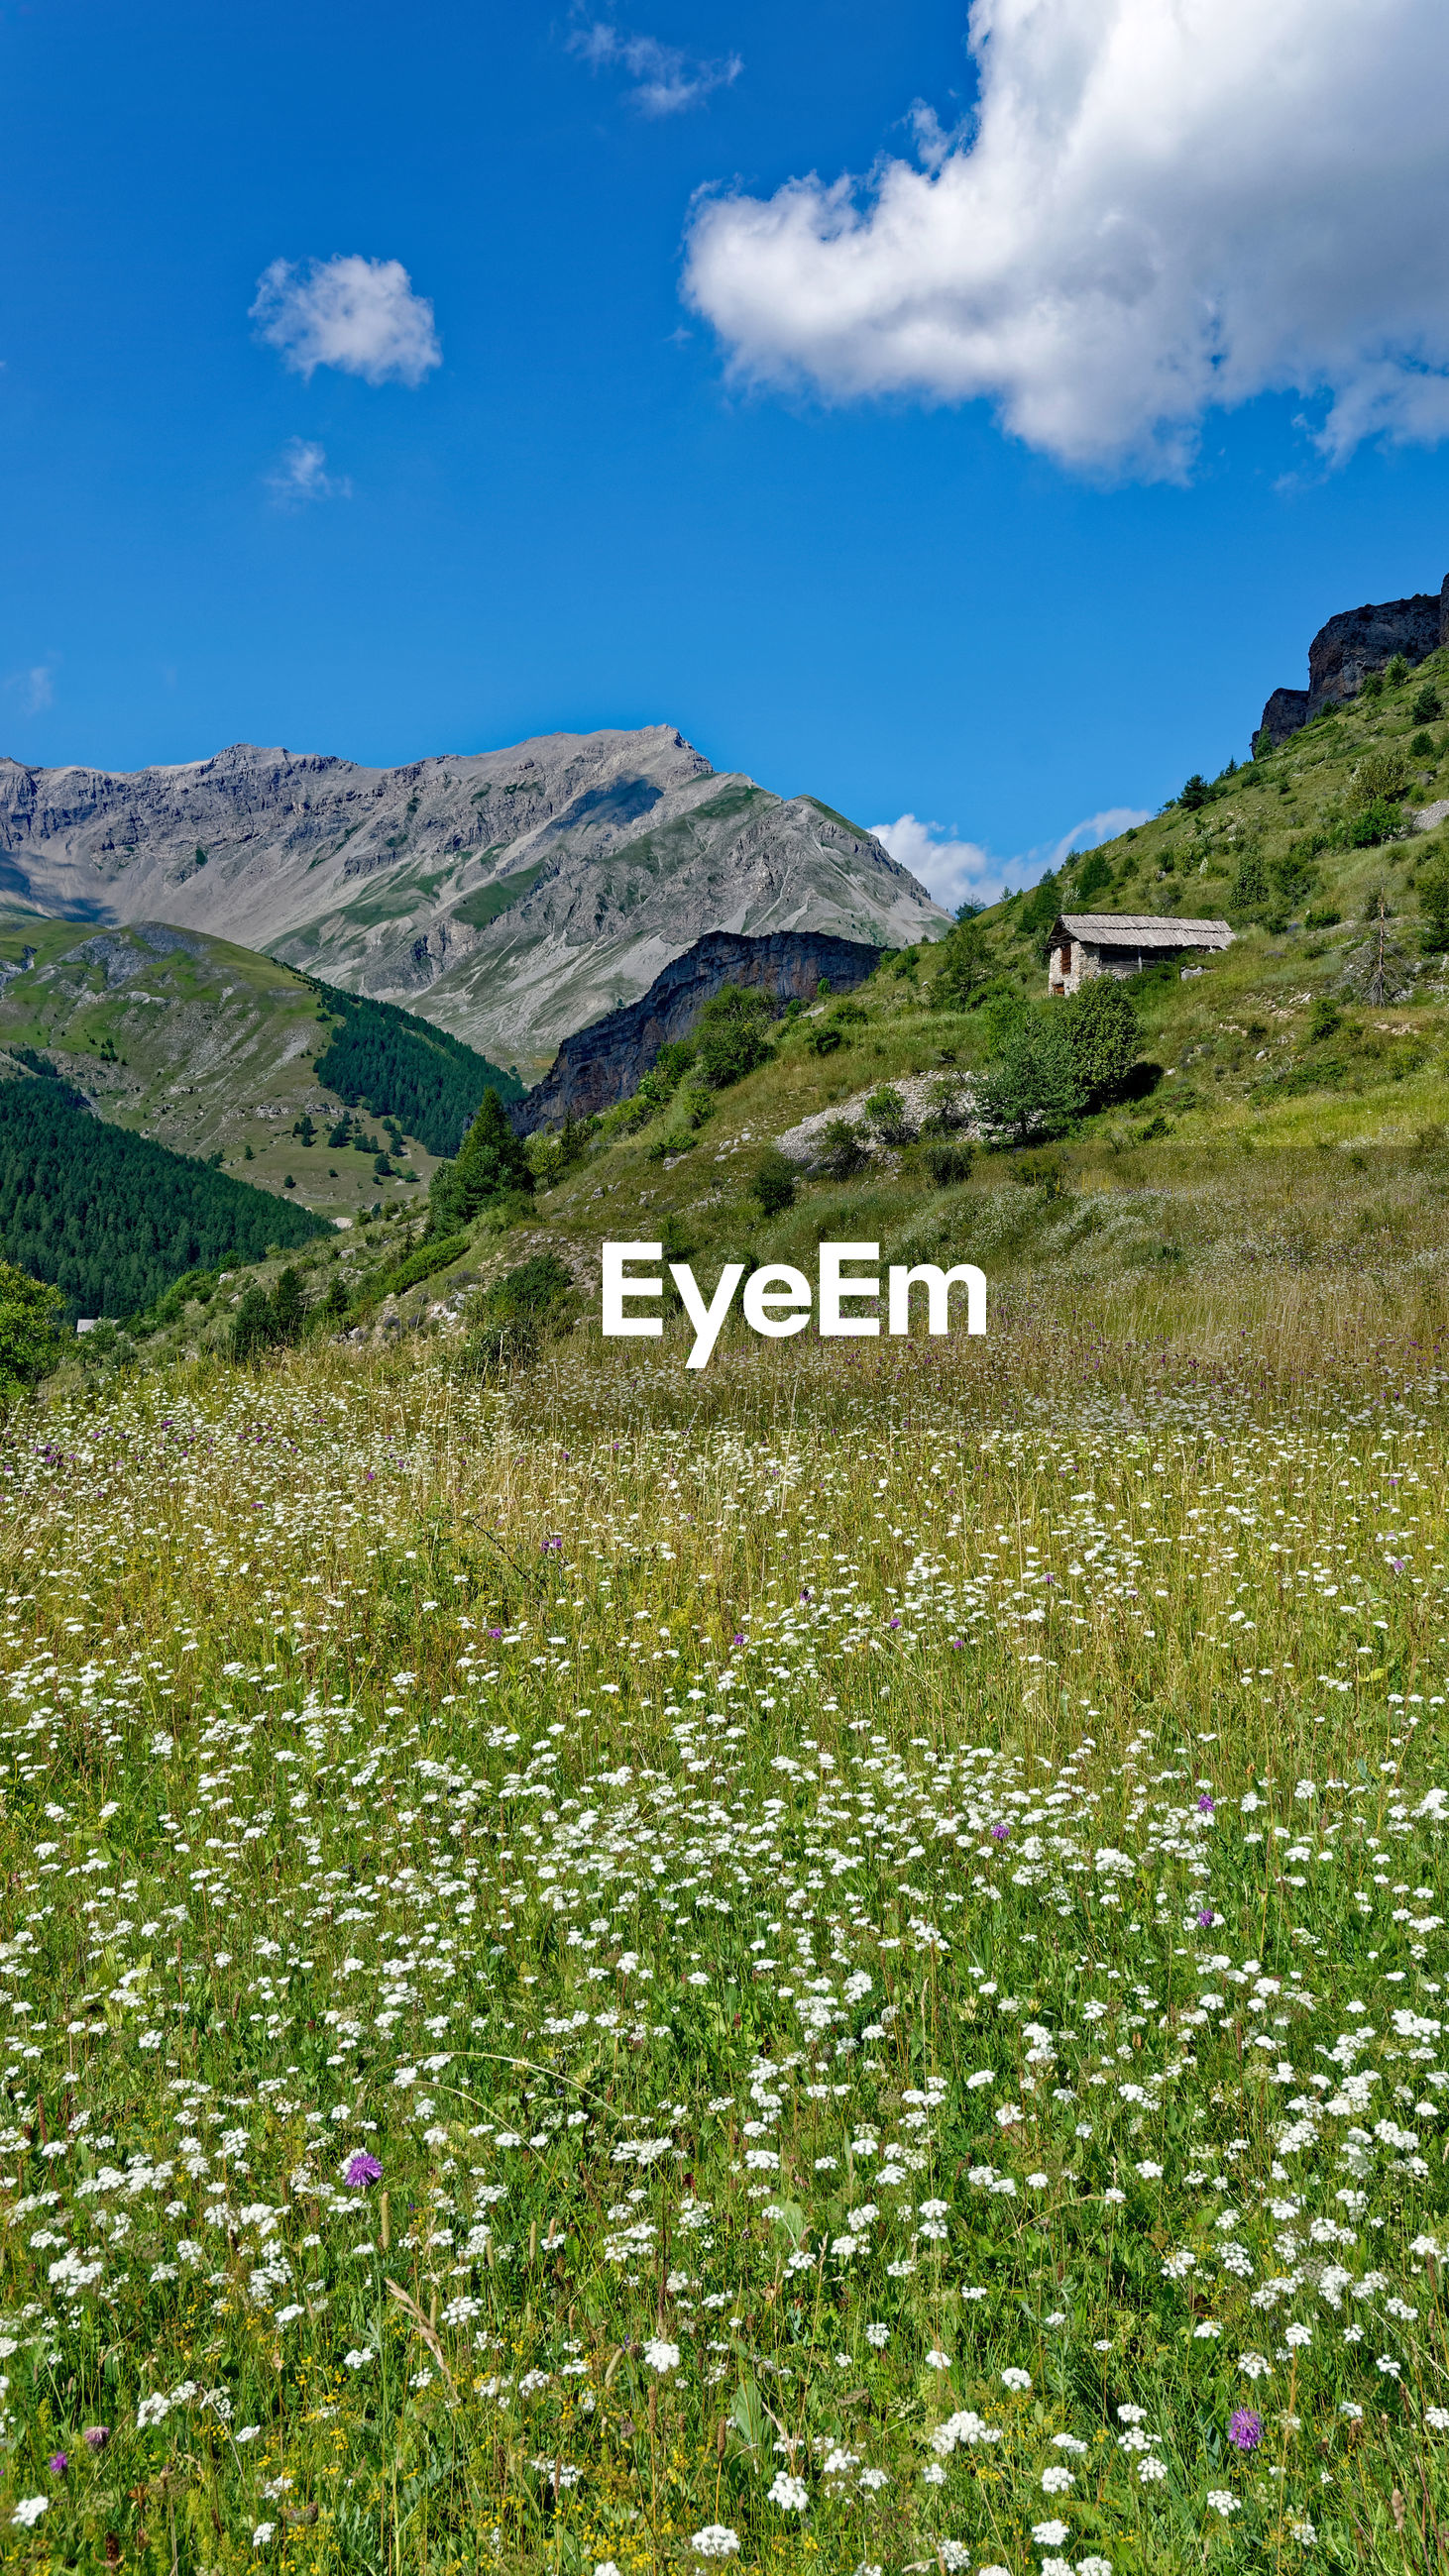 SCENIC VIEW OF GRASSY FIELD BY MOUNTAIN AGAINST SKY